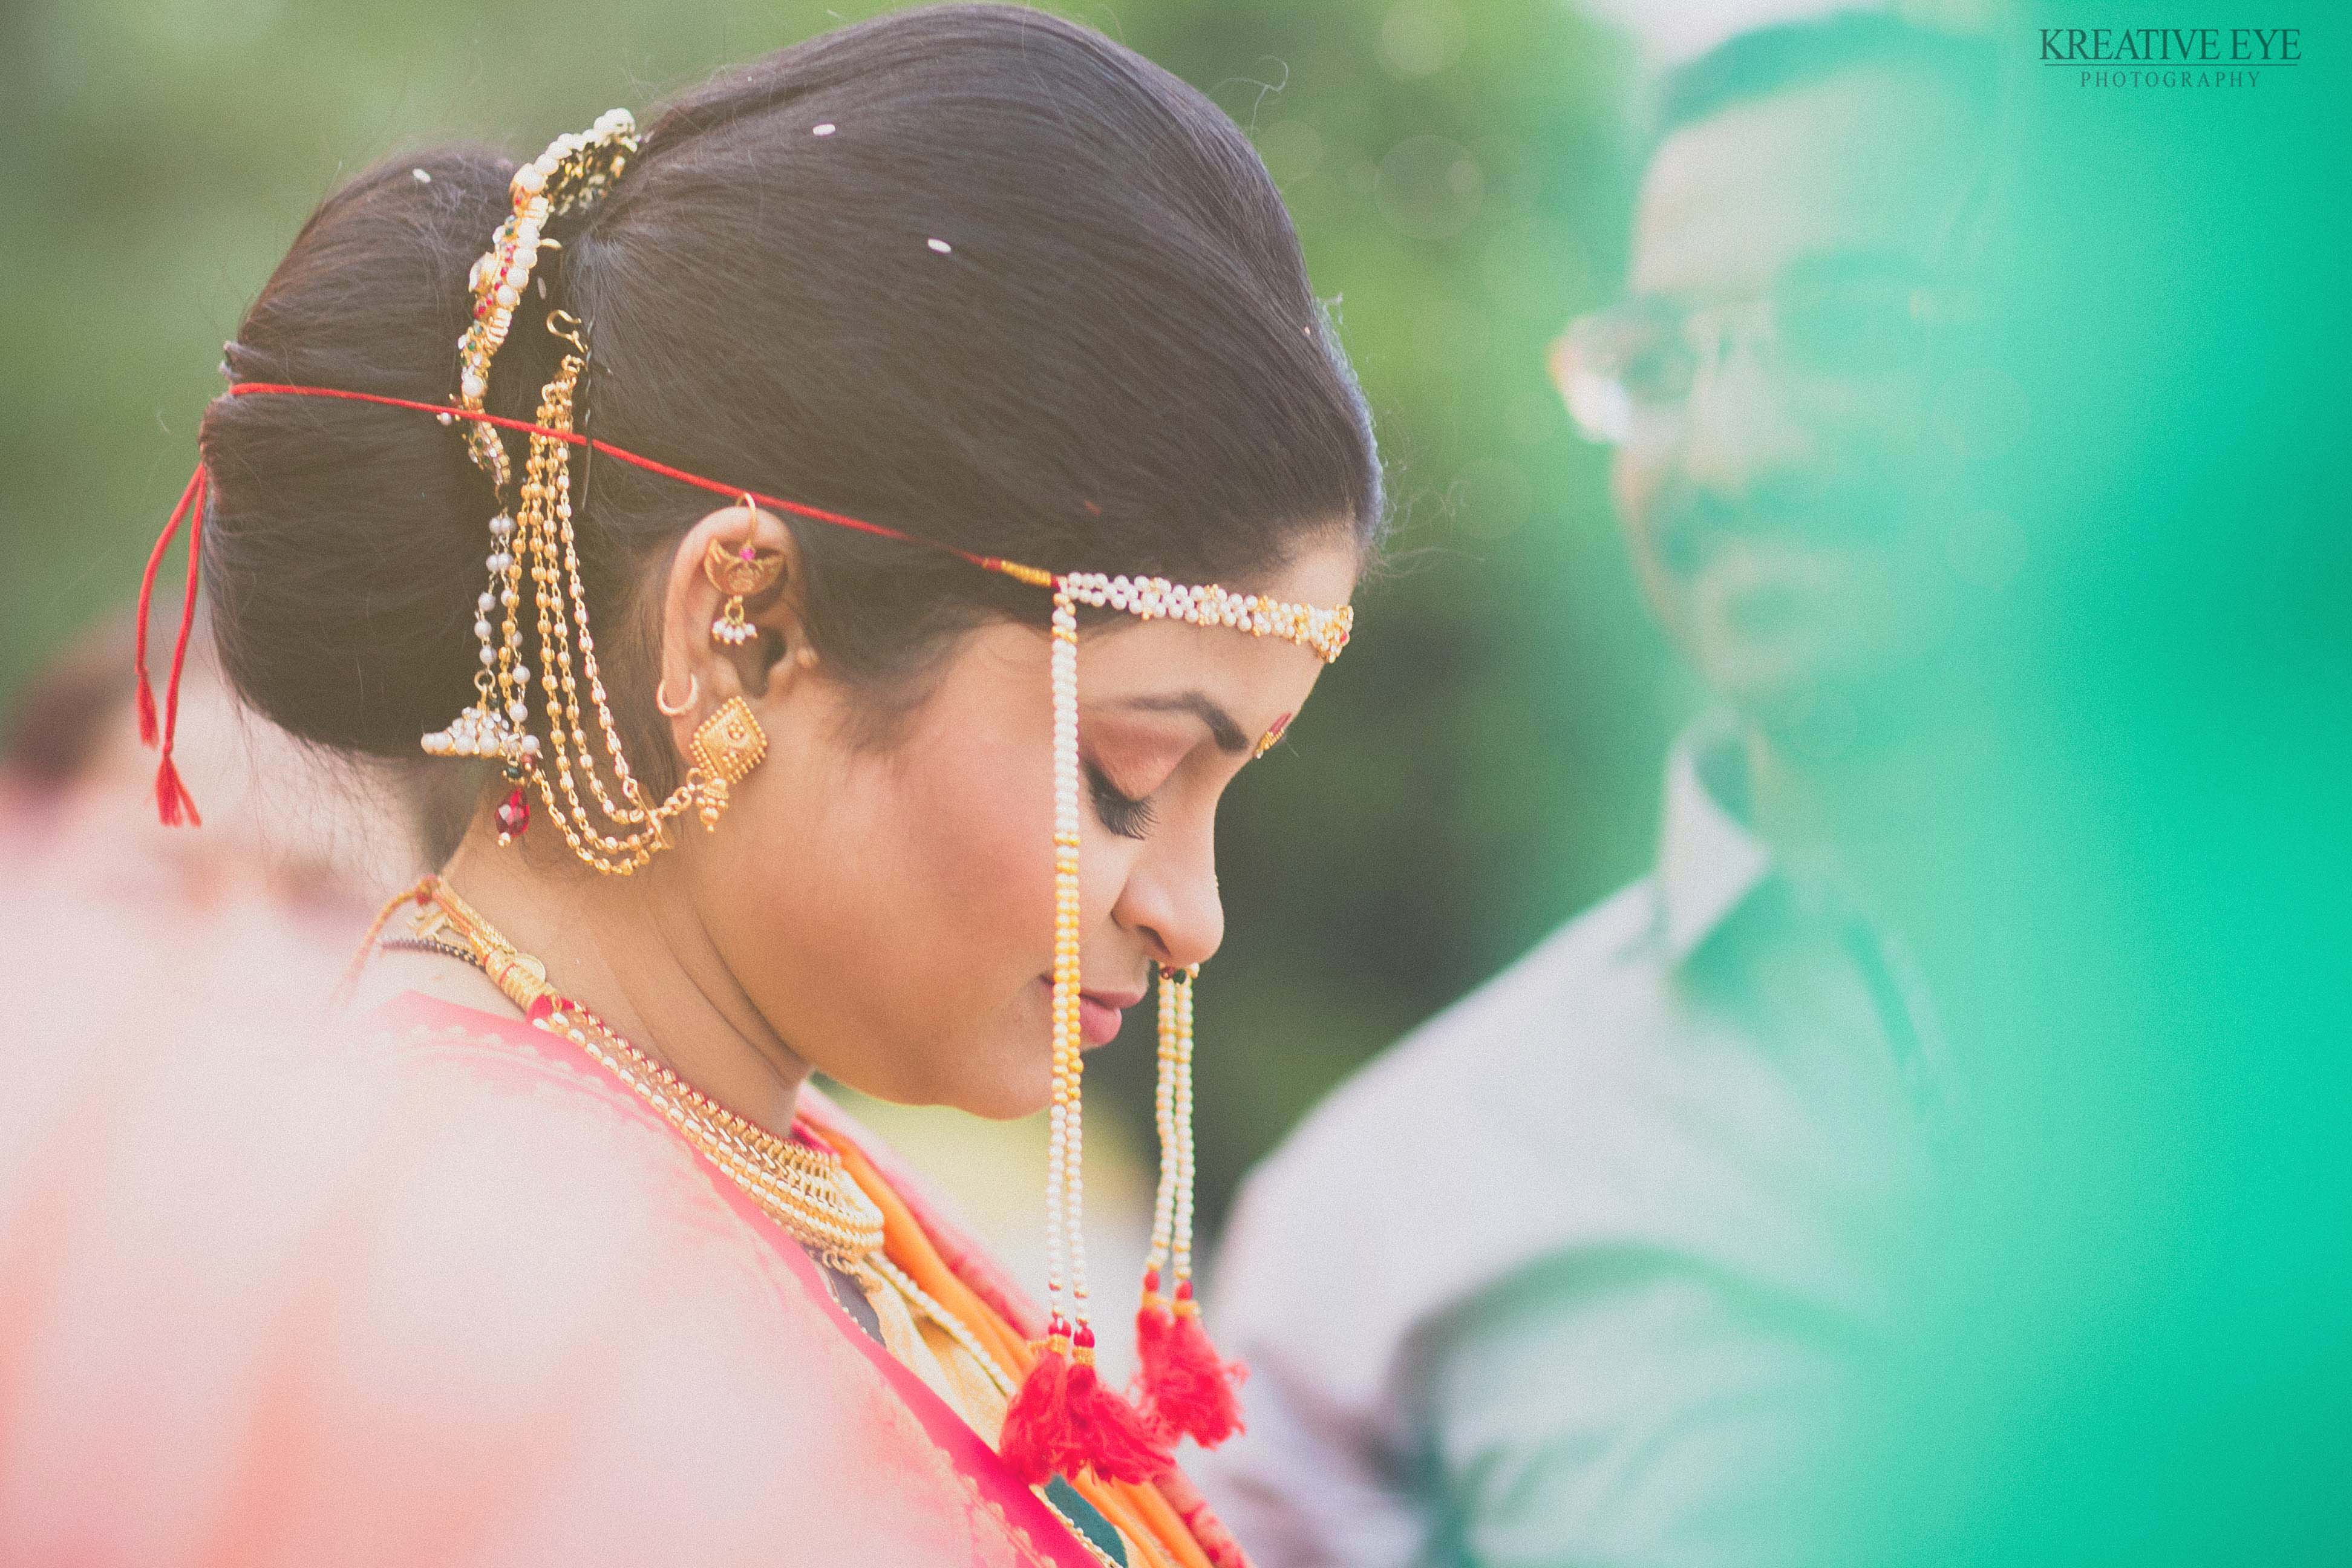 the indescribable calmness on her face just before D moment